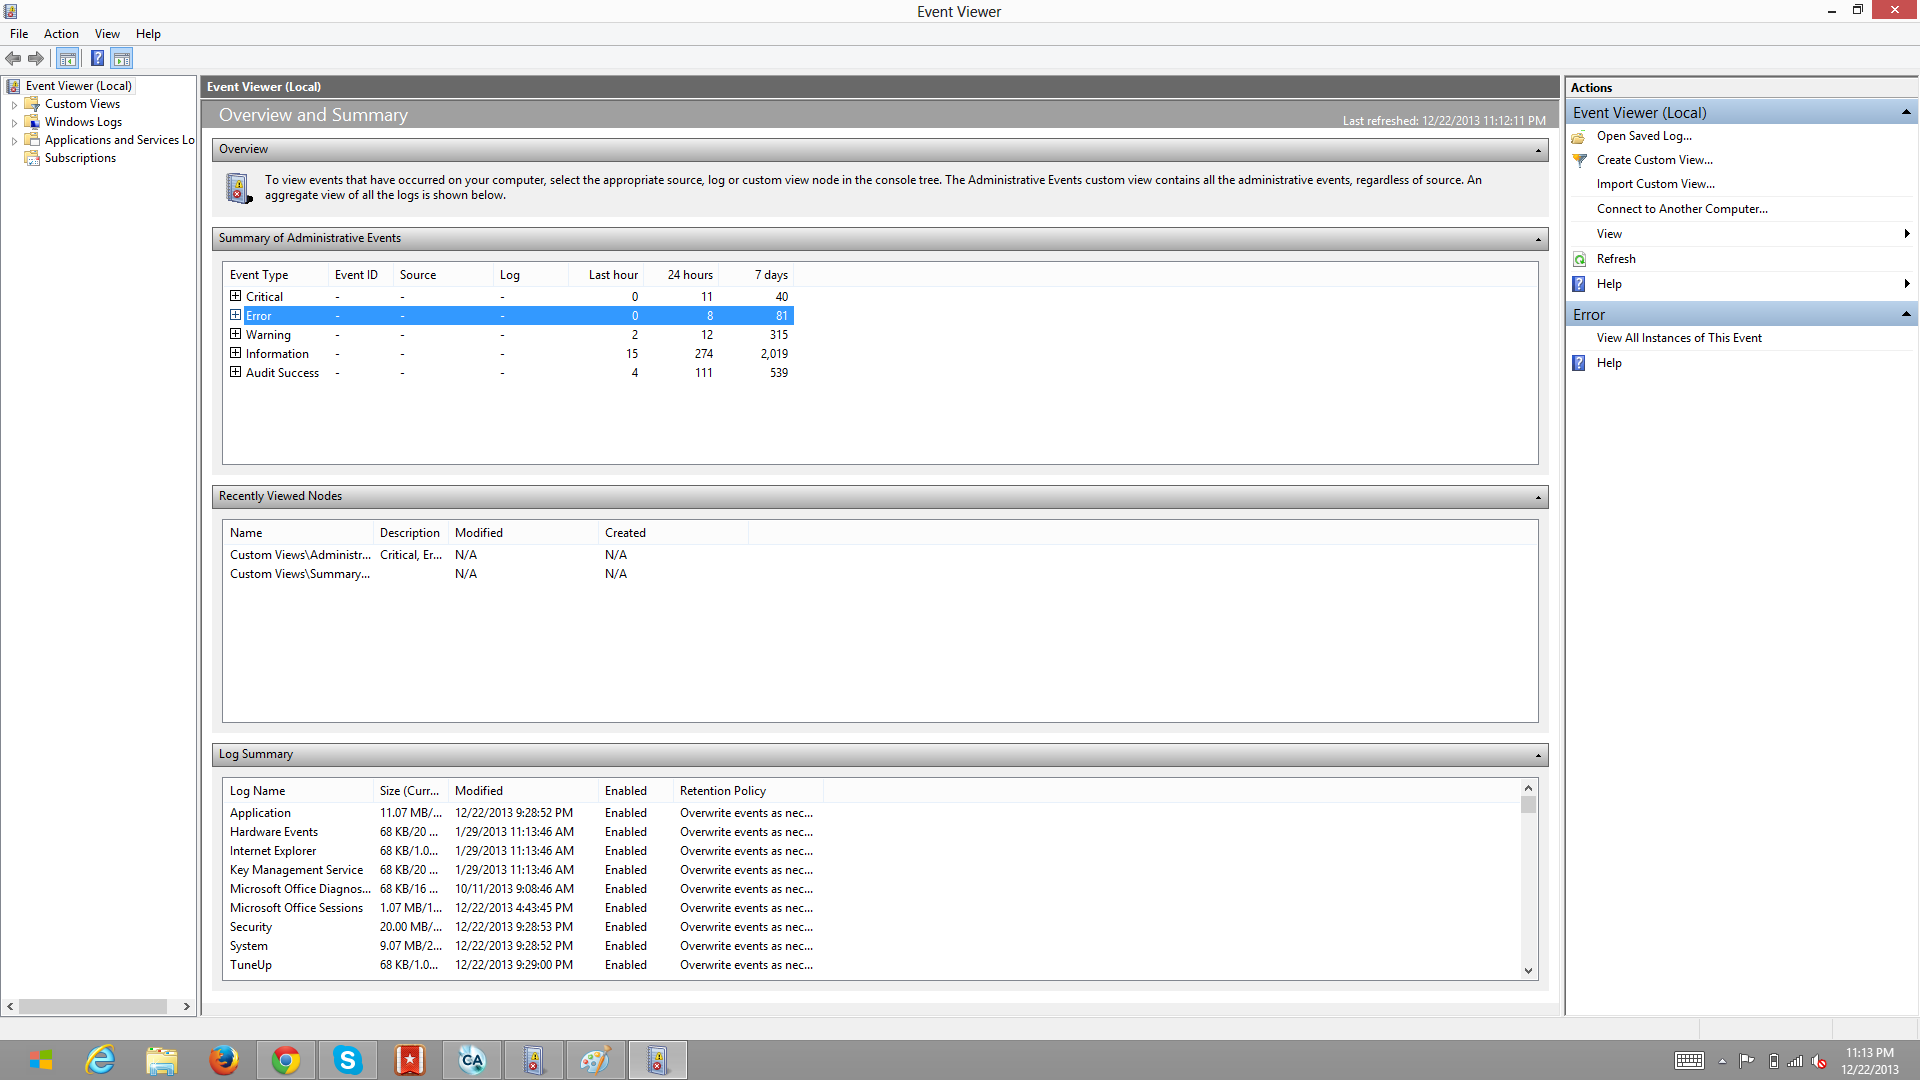 Event Viewer in Windows 8